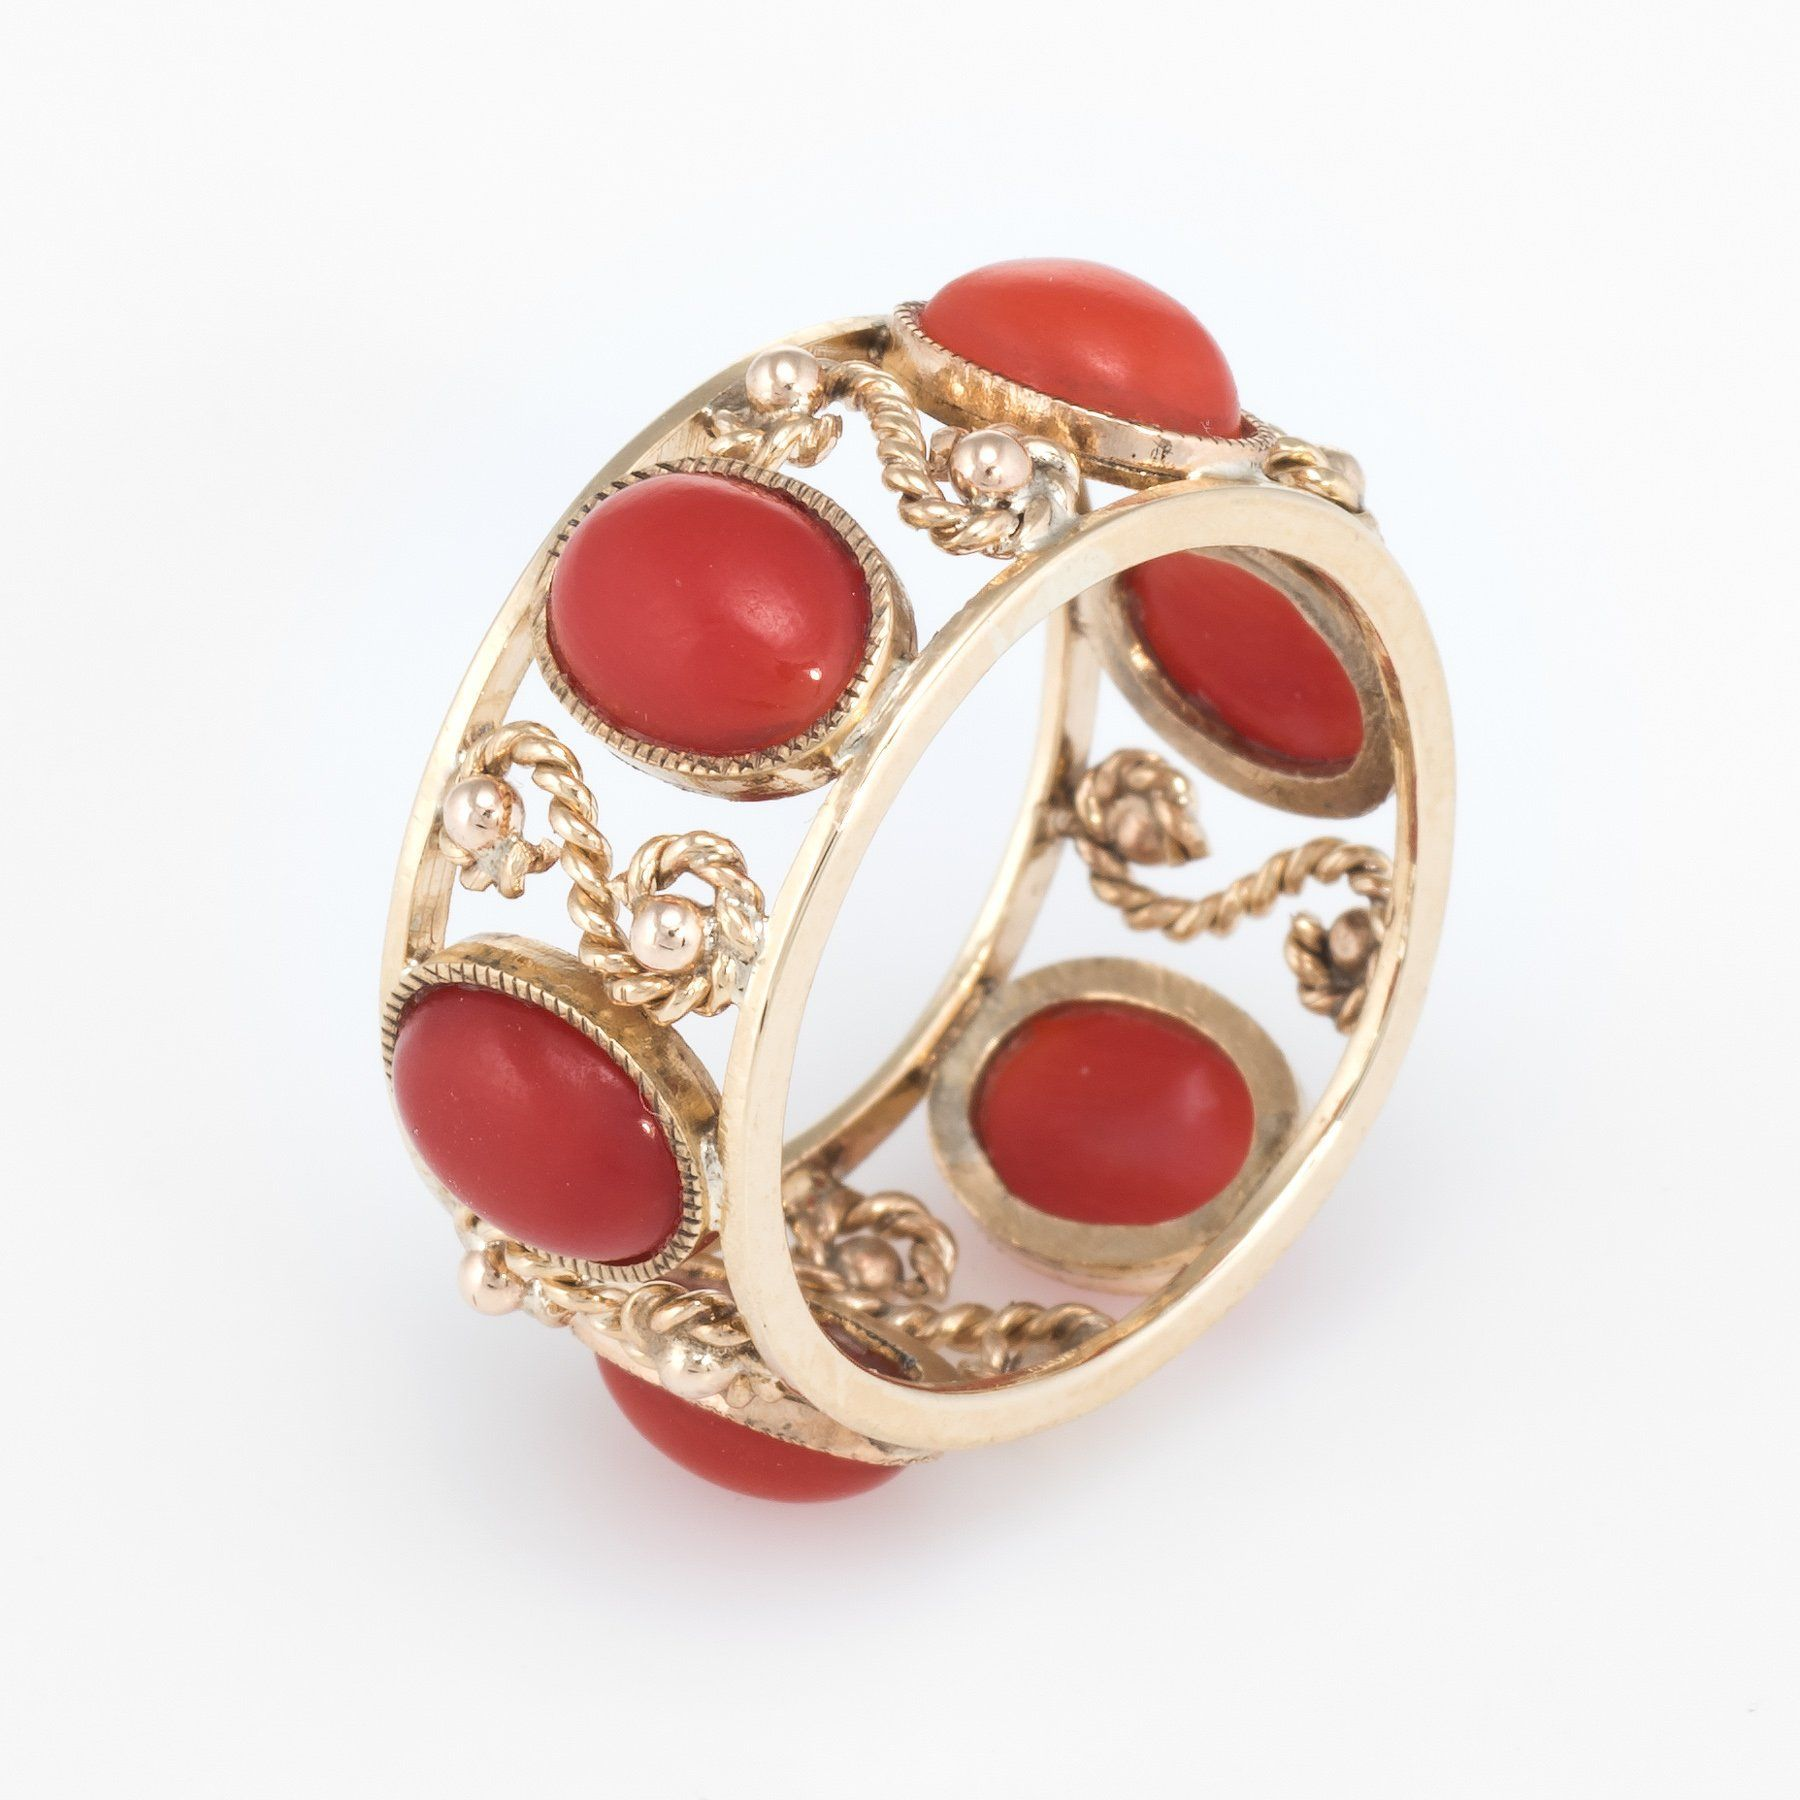 79b2f2f2b ... Sophie Jane Jewelry. Overview: Elegant vintage eternity ring (circa  1960s to 1970s), crafted in 14